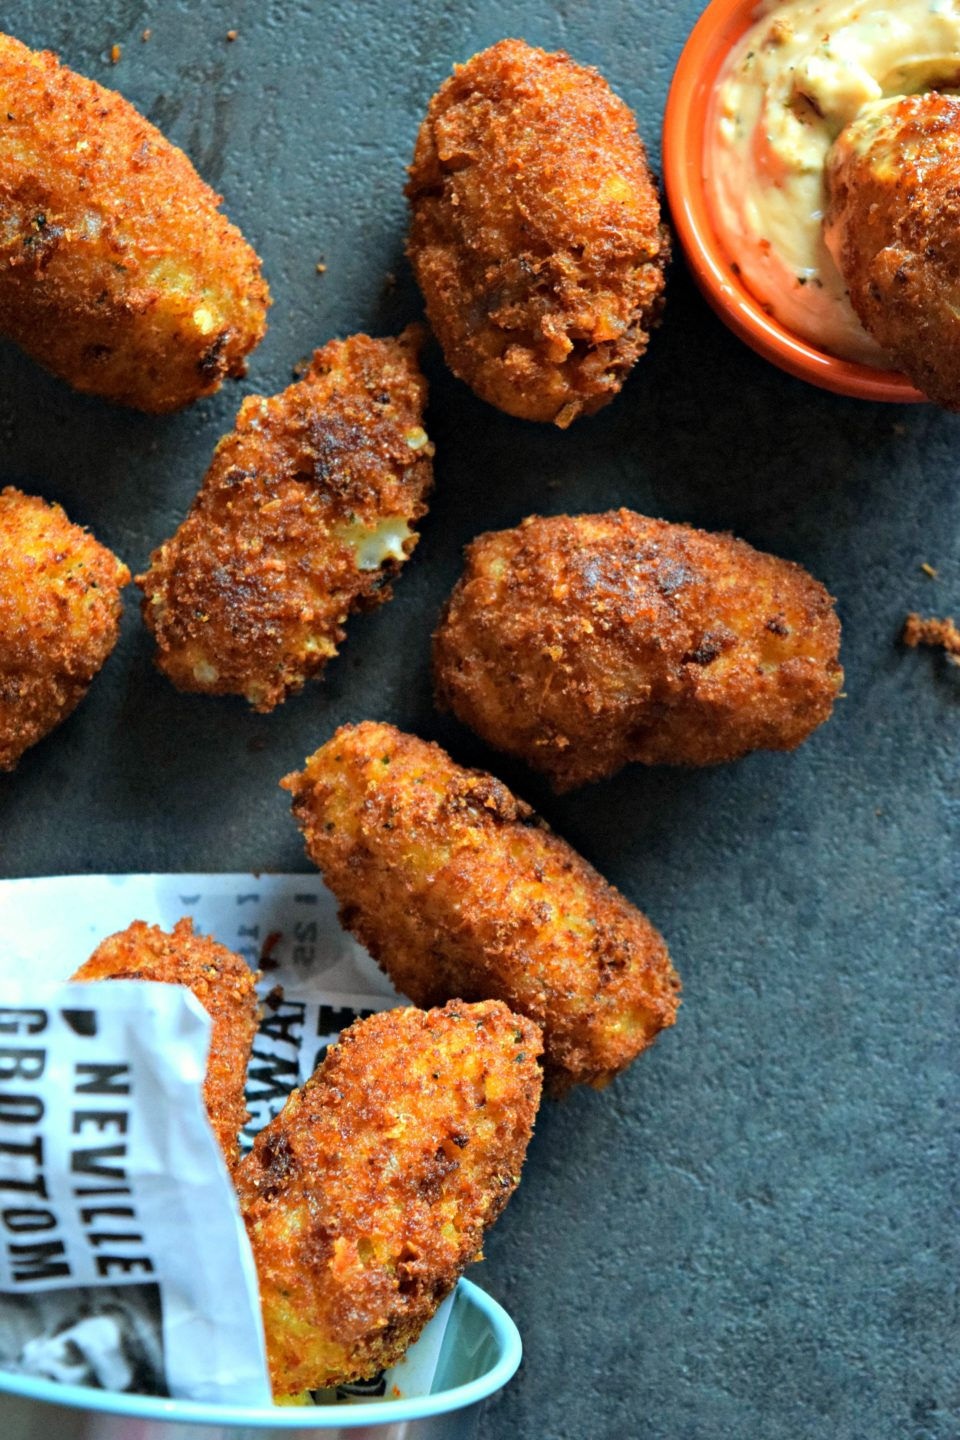 Stella Cheese, Rice & Methi Kebab With Tater Tot Stuffing is a spicy vegetarian party appetizer. It has flavors of India, Middle East & Mediterranean. A fusion recipe for all!